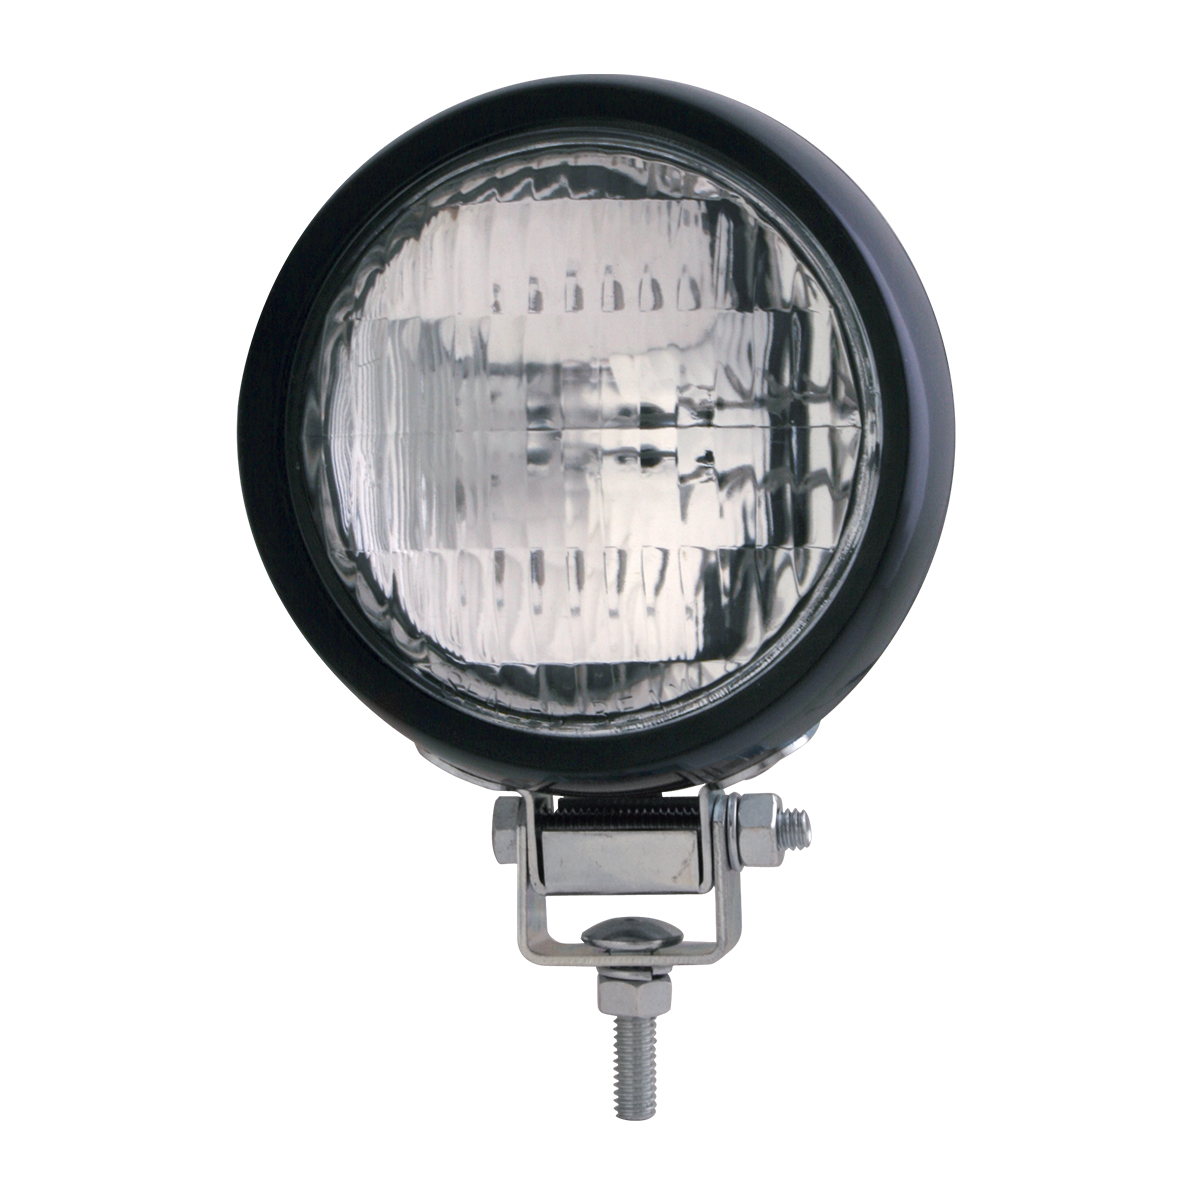 "#80417 4 ½"" Tractor Utility Light - Front View"